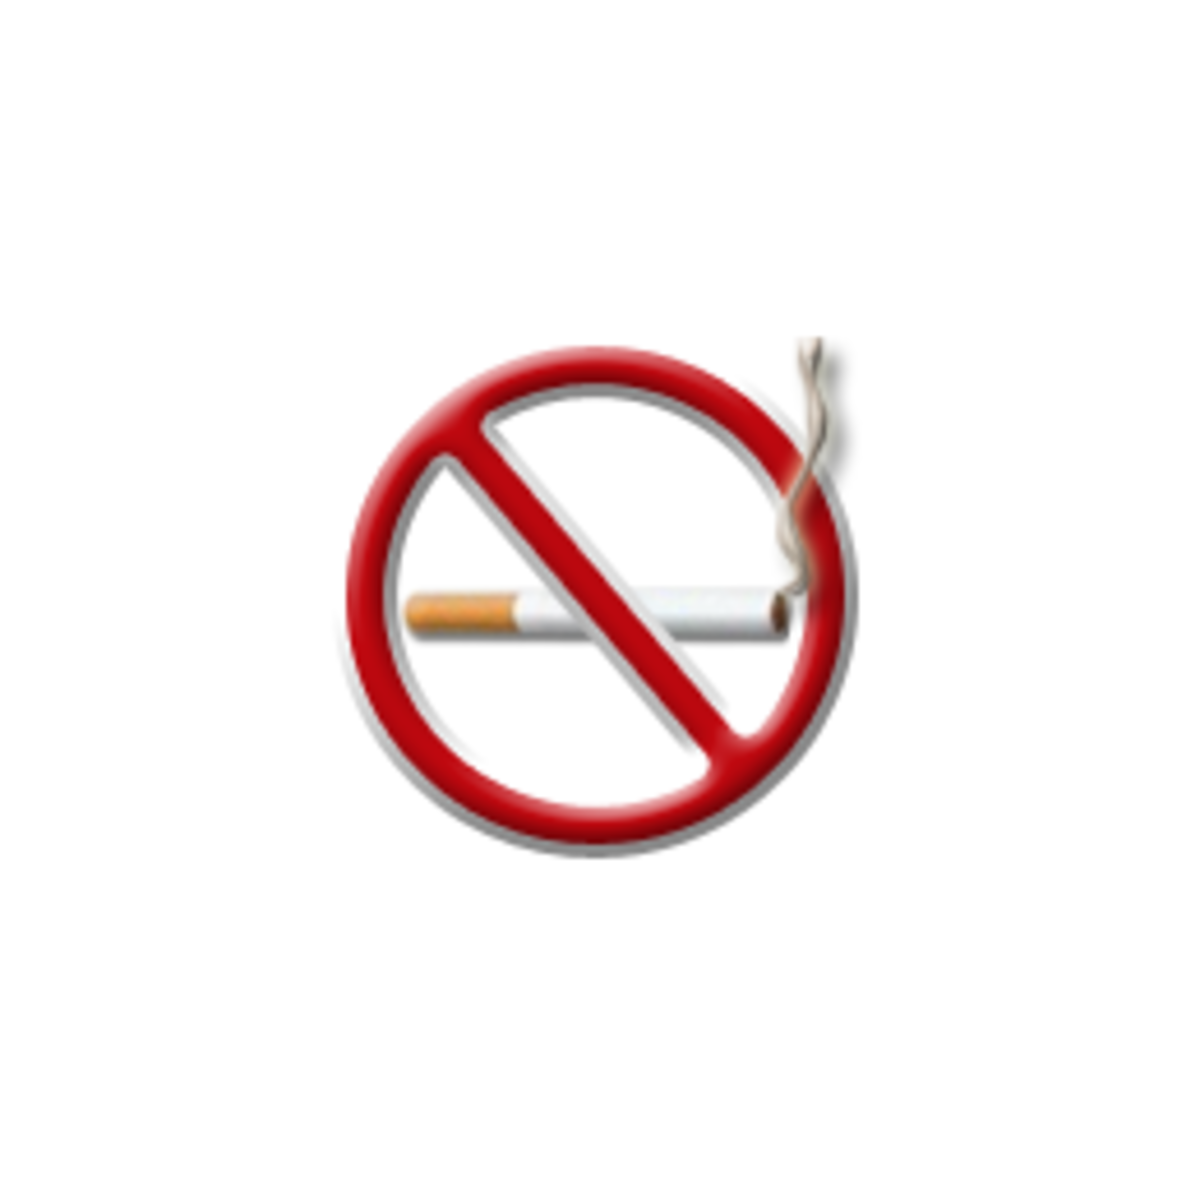 smoking must be banned in all Three reasons why smoking should be banned by norma chew aug 14, 2017 norma chew norma chew is a retired registered nurse who has been a freelance writer since 1978.